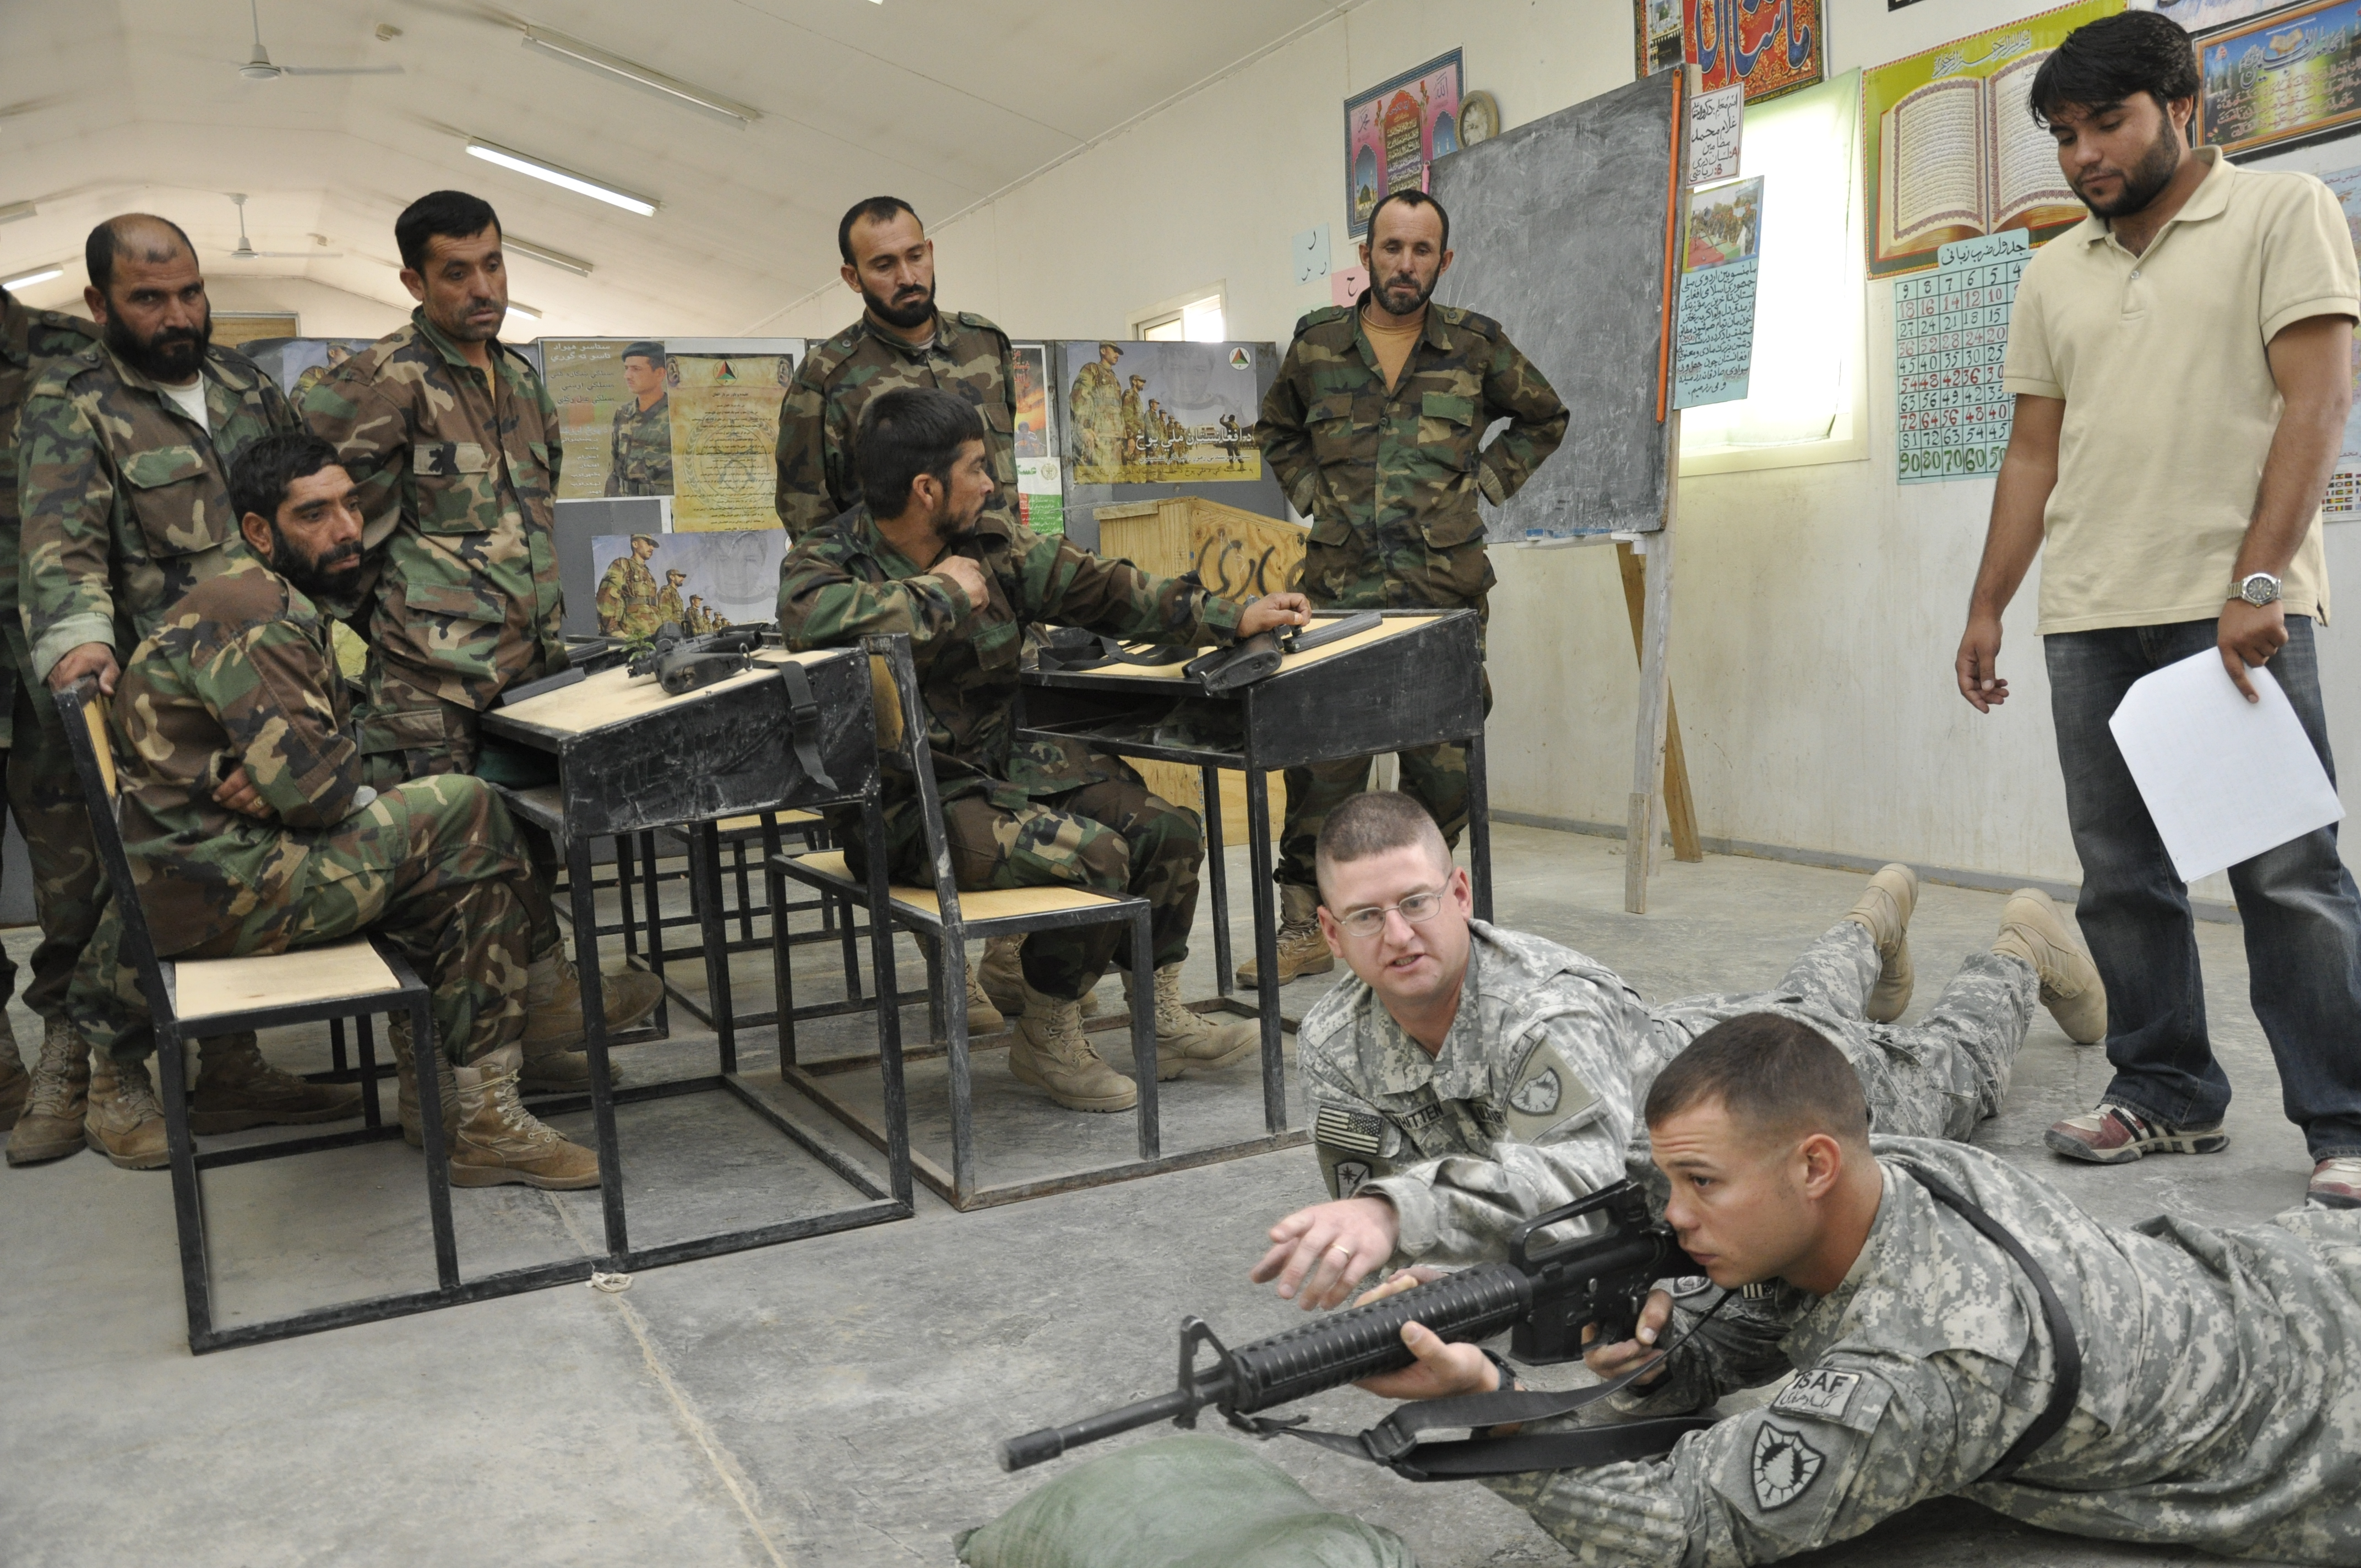 ... headquarters and headquarters company commander, explains while Staff